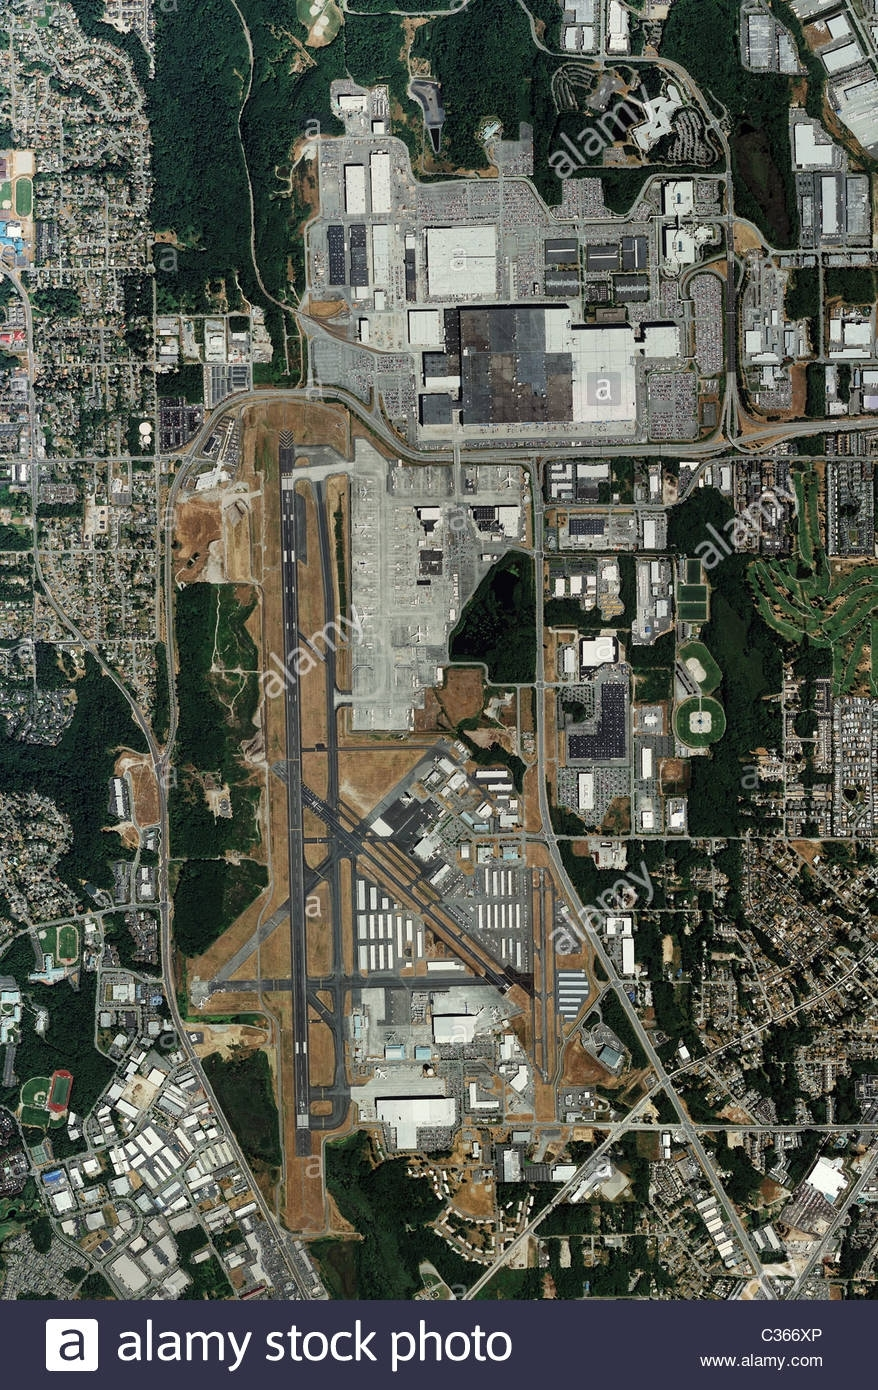 Boeing Factory Usa Stock Photos & Boeing Factory Usa Stock with Boeing Renton Plant Map